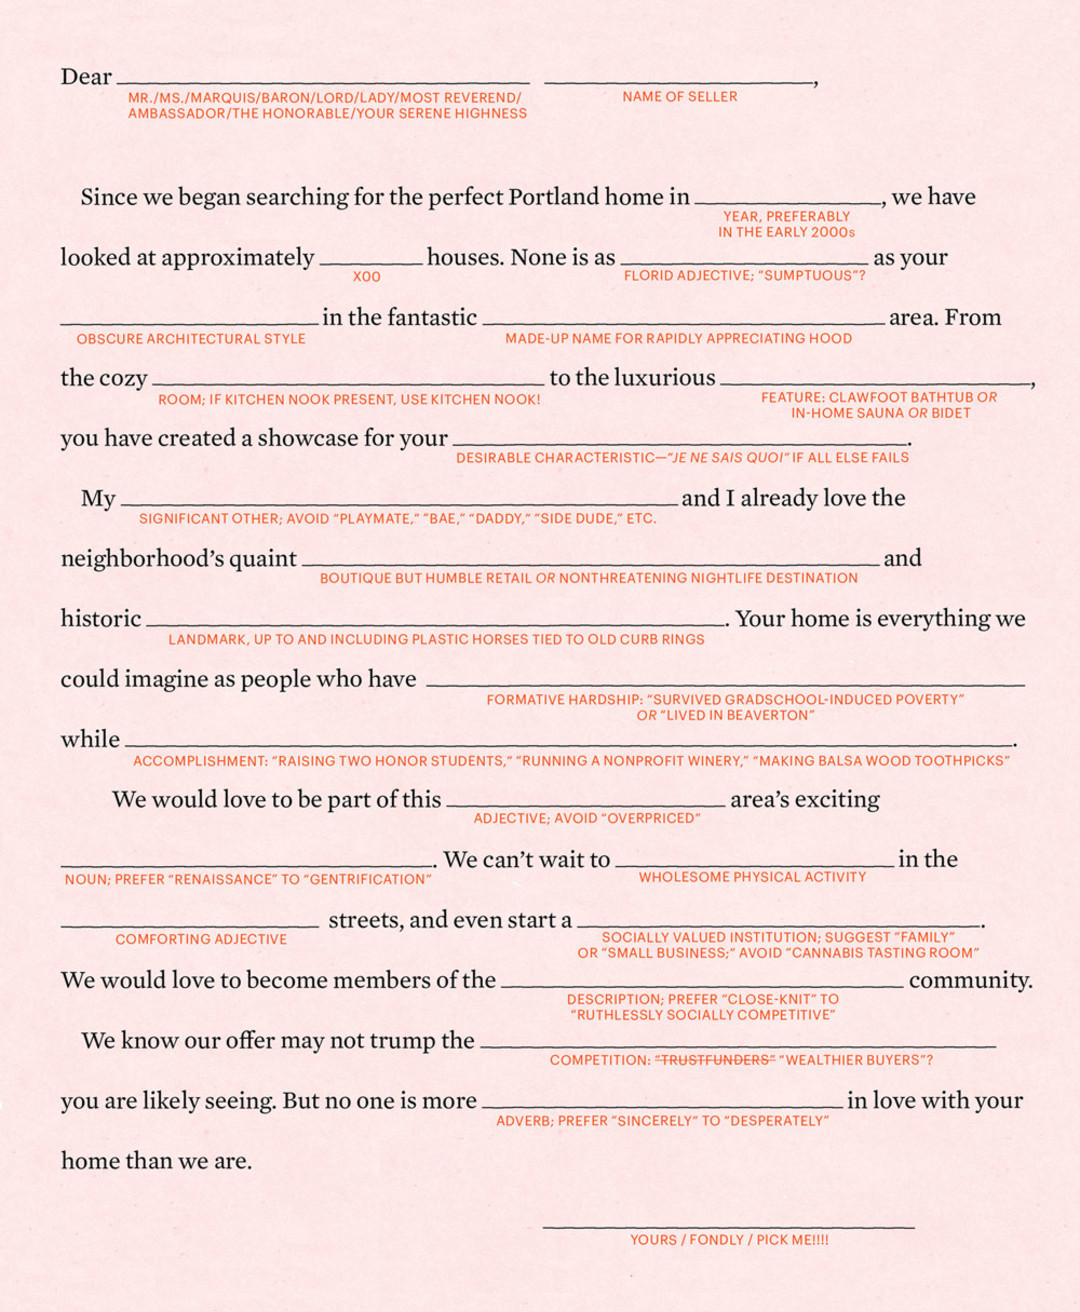 The ultimate house hunters letter mad libs style portland monthly the ultimate house hunters letter mad libs style thecheapjerseys Choice Image